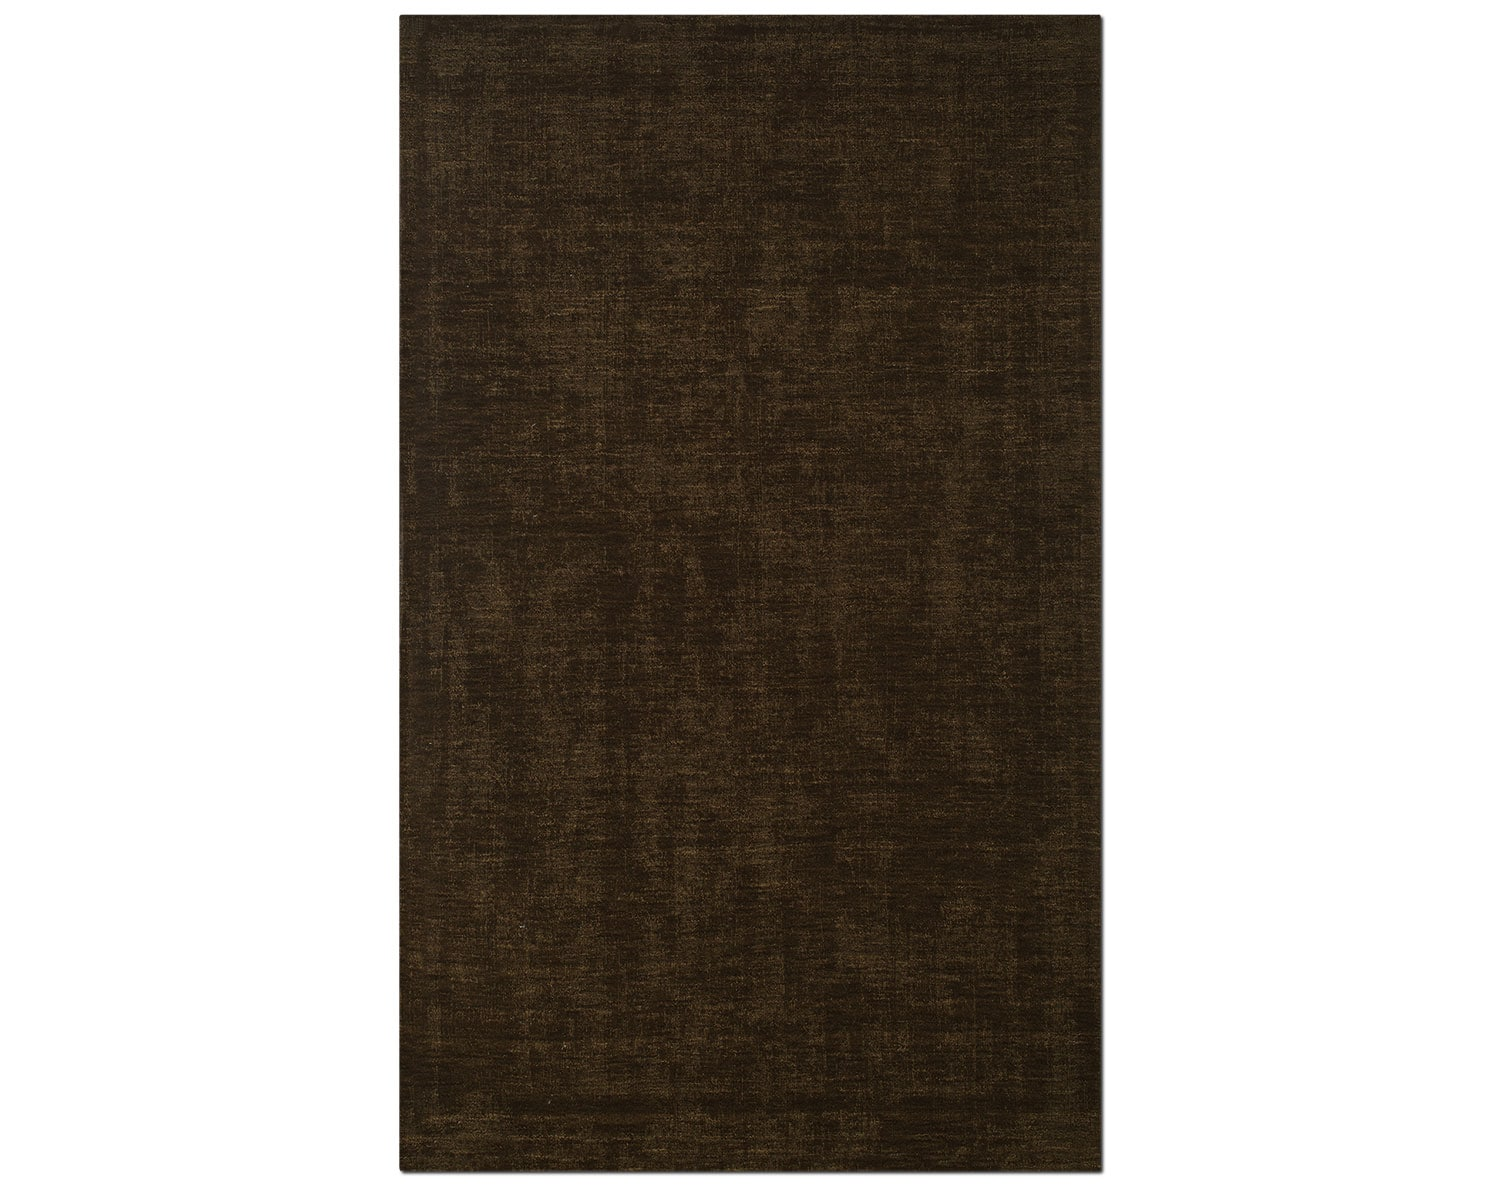 The Basics Collection - Medium Brown